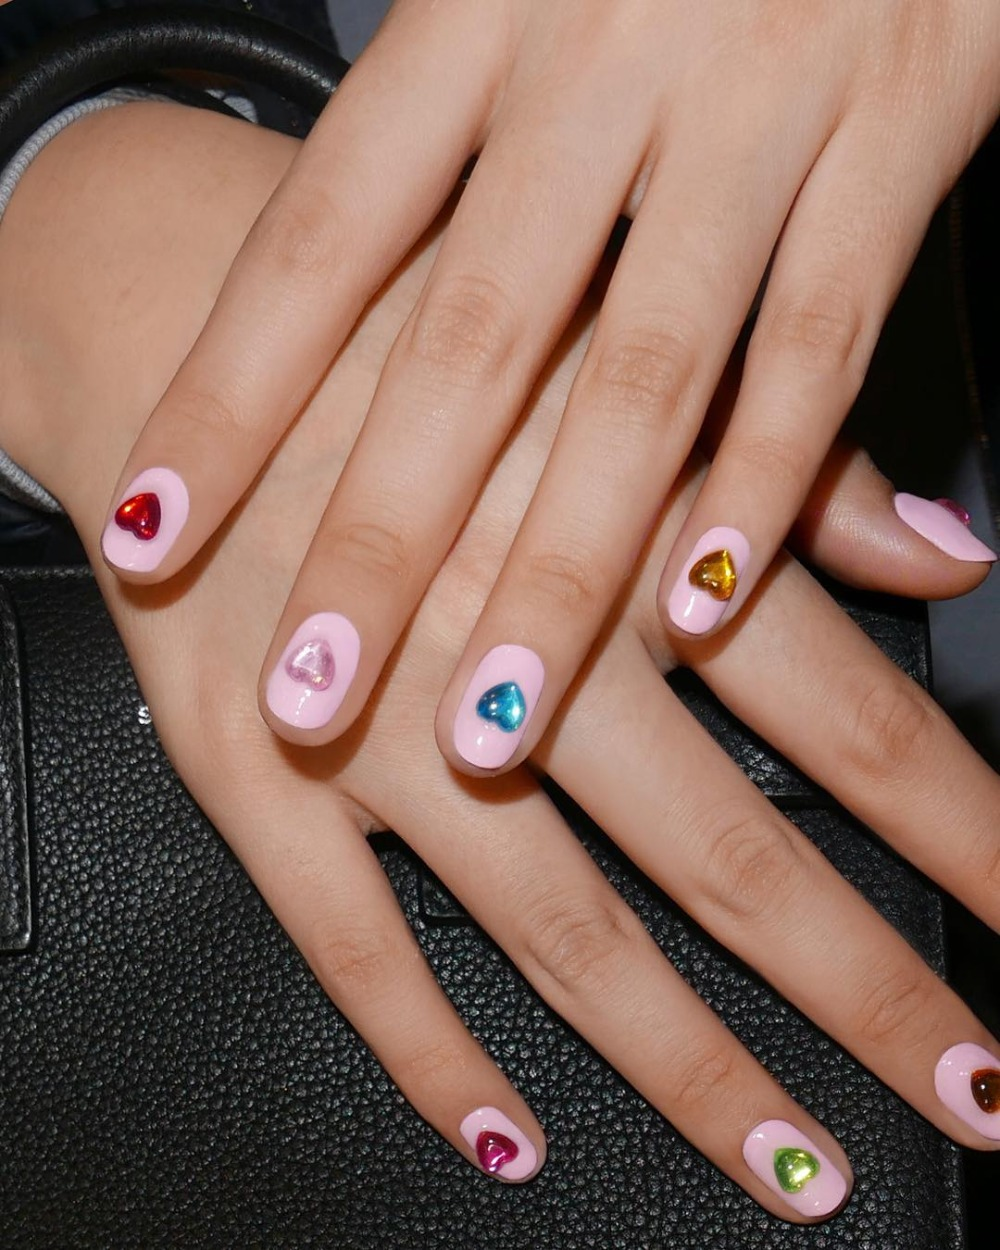 14 Valentine's Day Manicures to Rock for Cupid